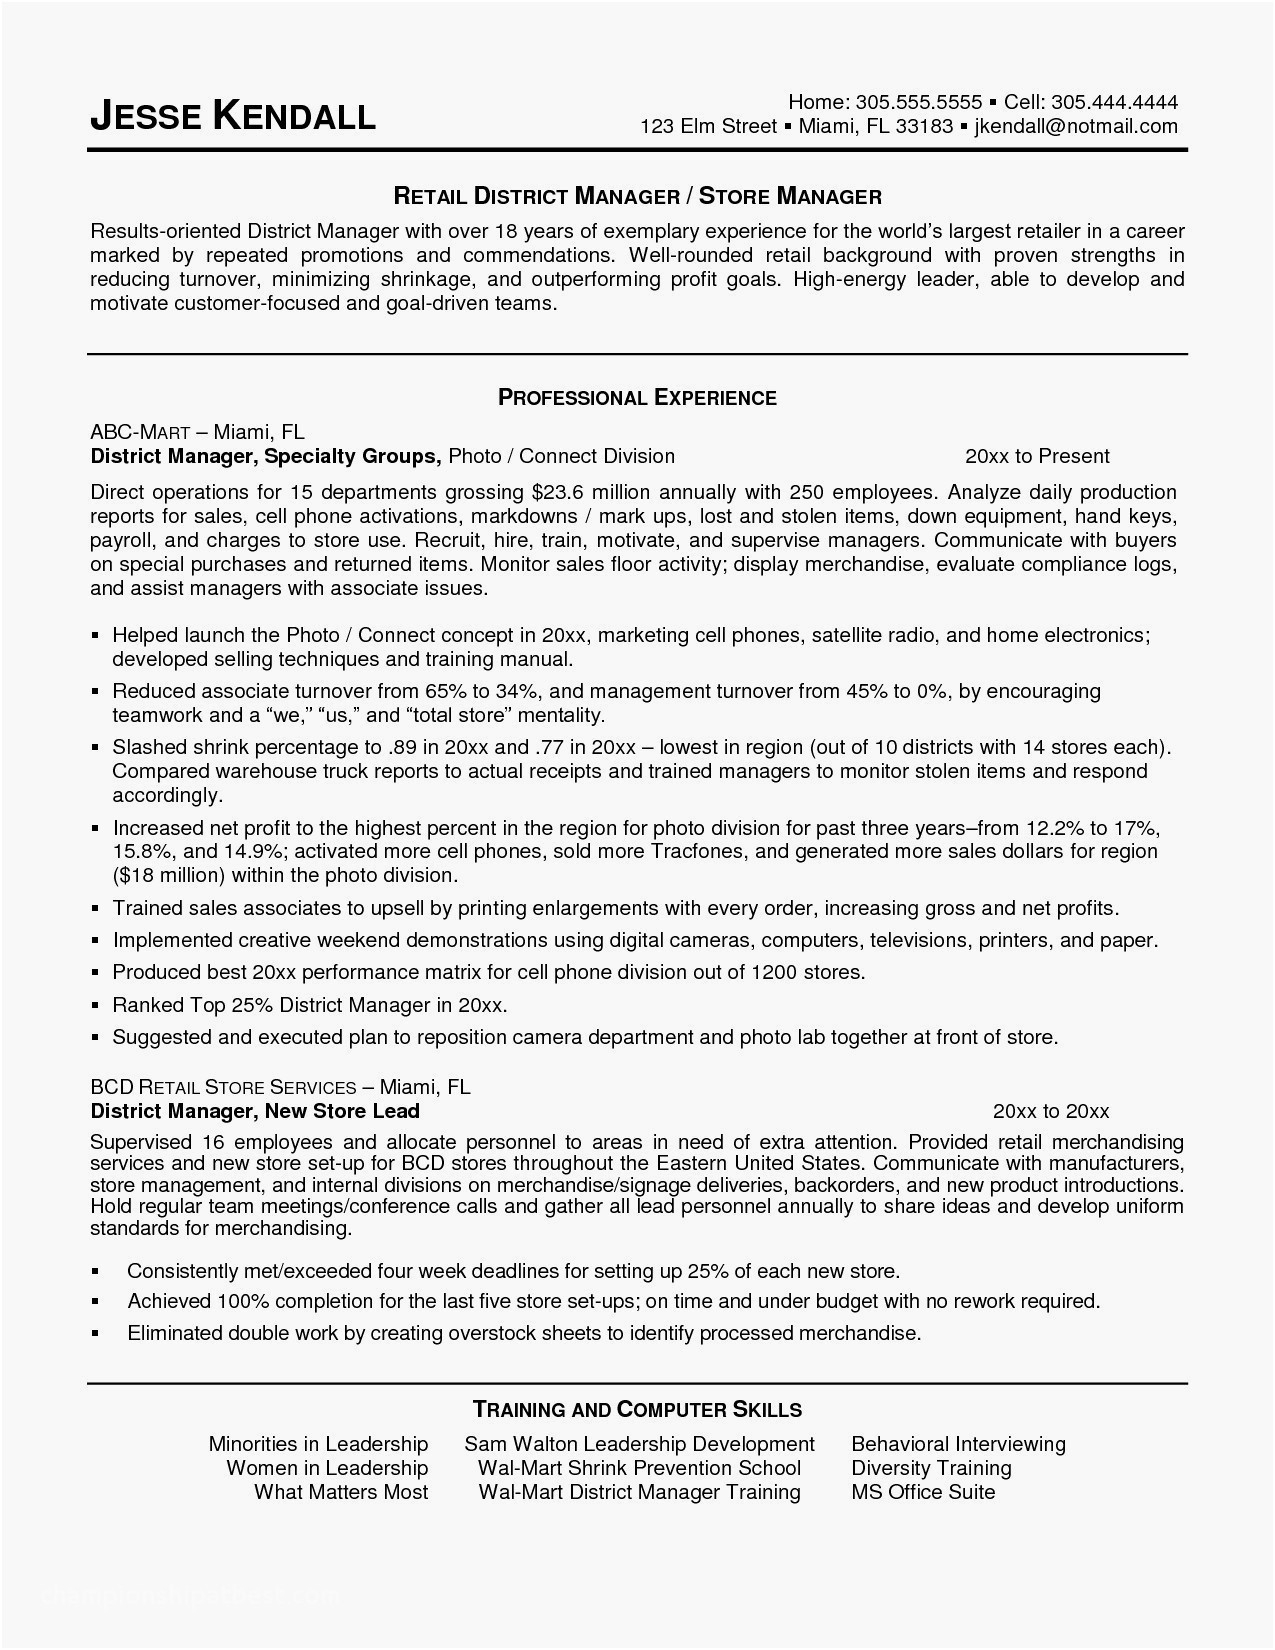 Executive Resume Writing Services - Executive Resume Service Luxury Cfo Resume Examples Resume Writing